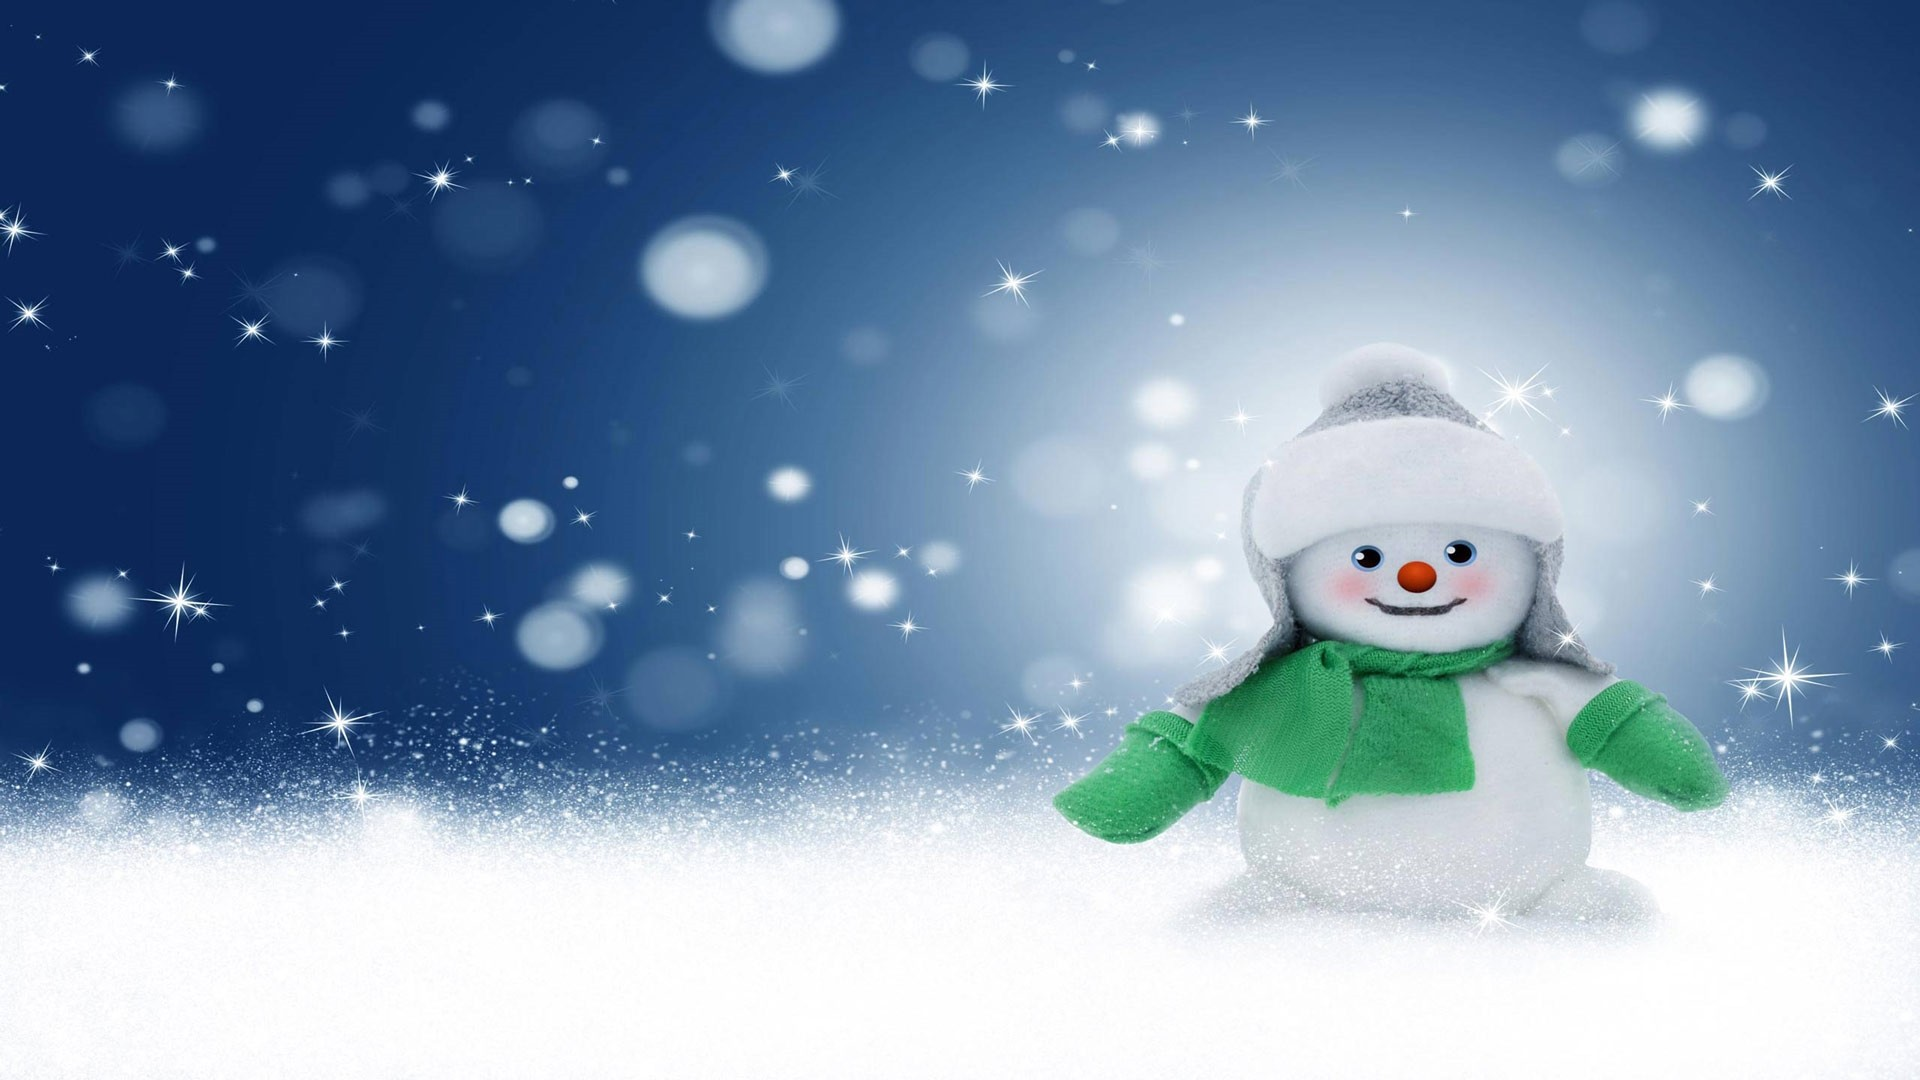 Snowman Wallpaper and Background